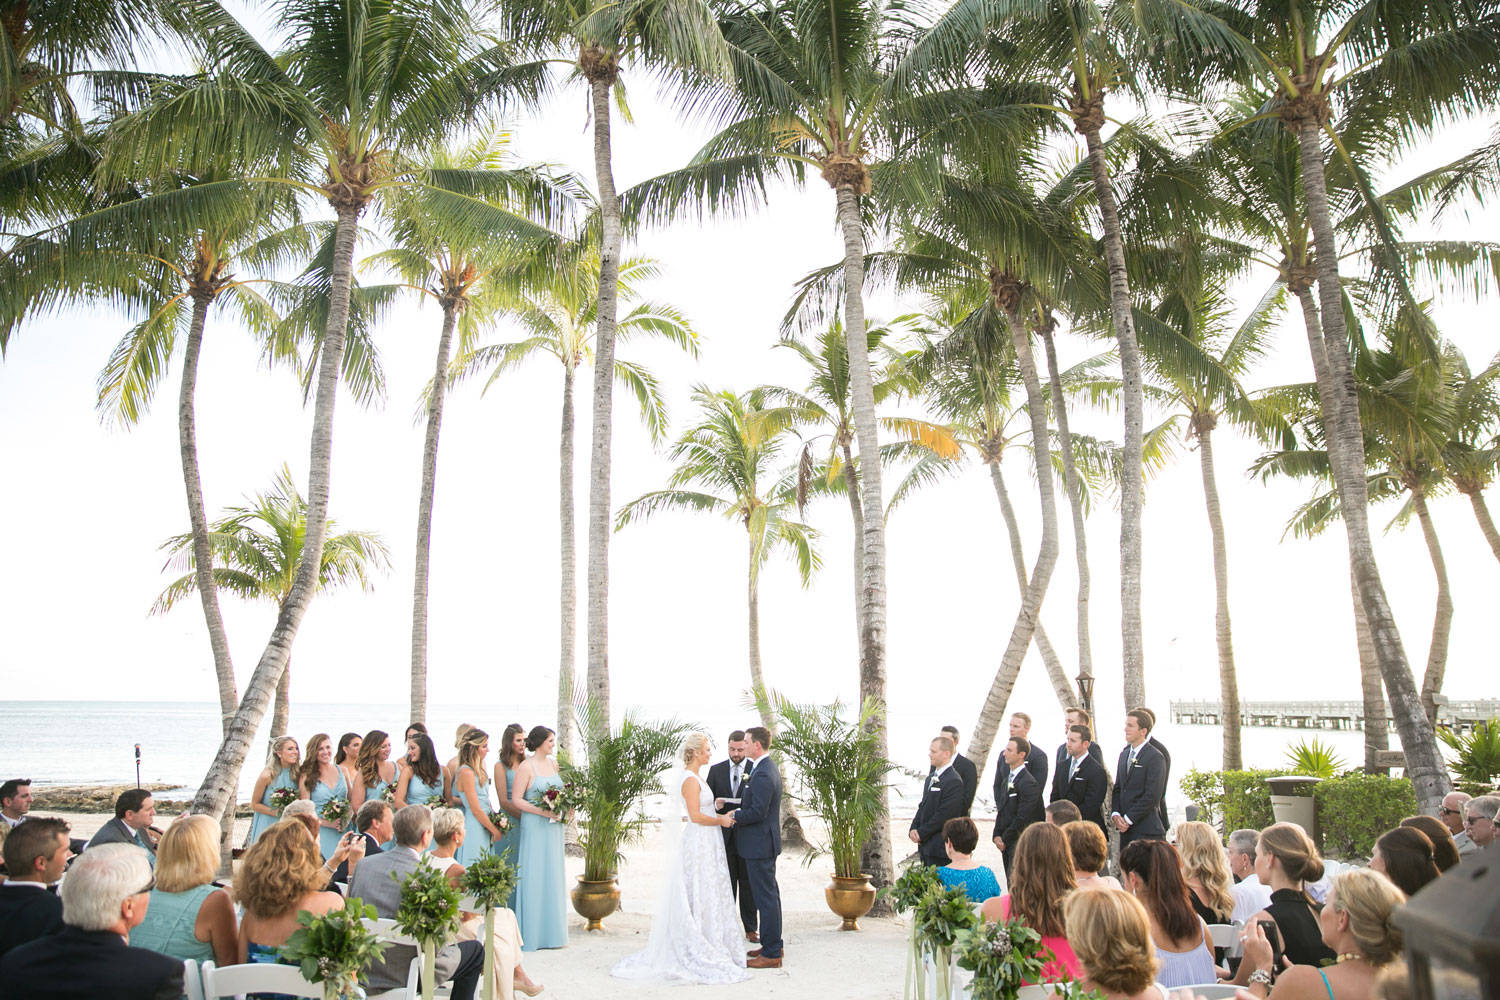 Outdoor wedding ceremony beach and ocean views minimal decoration